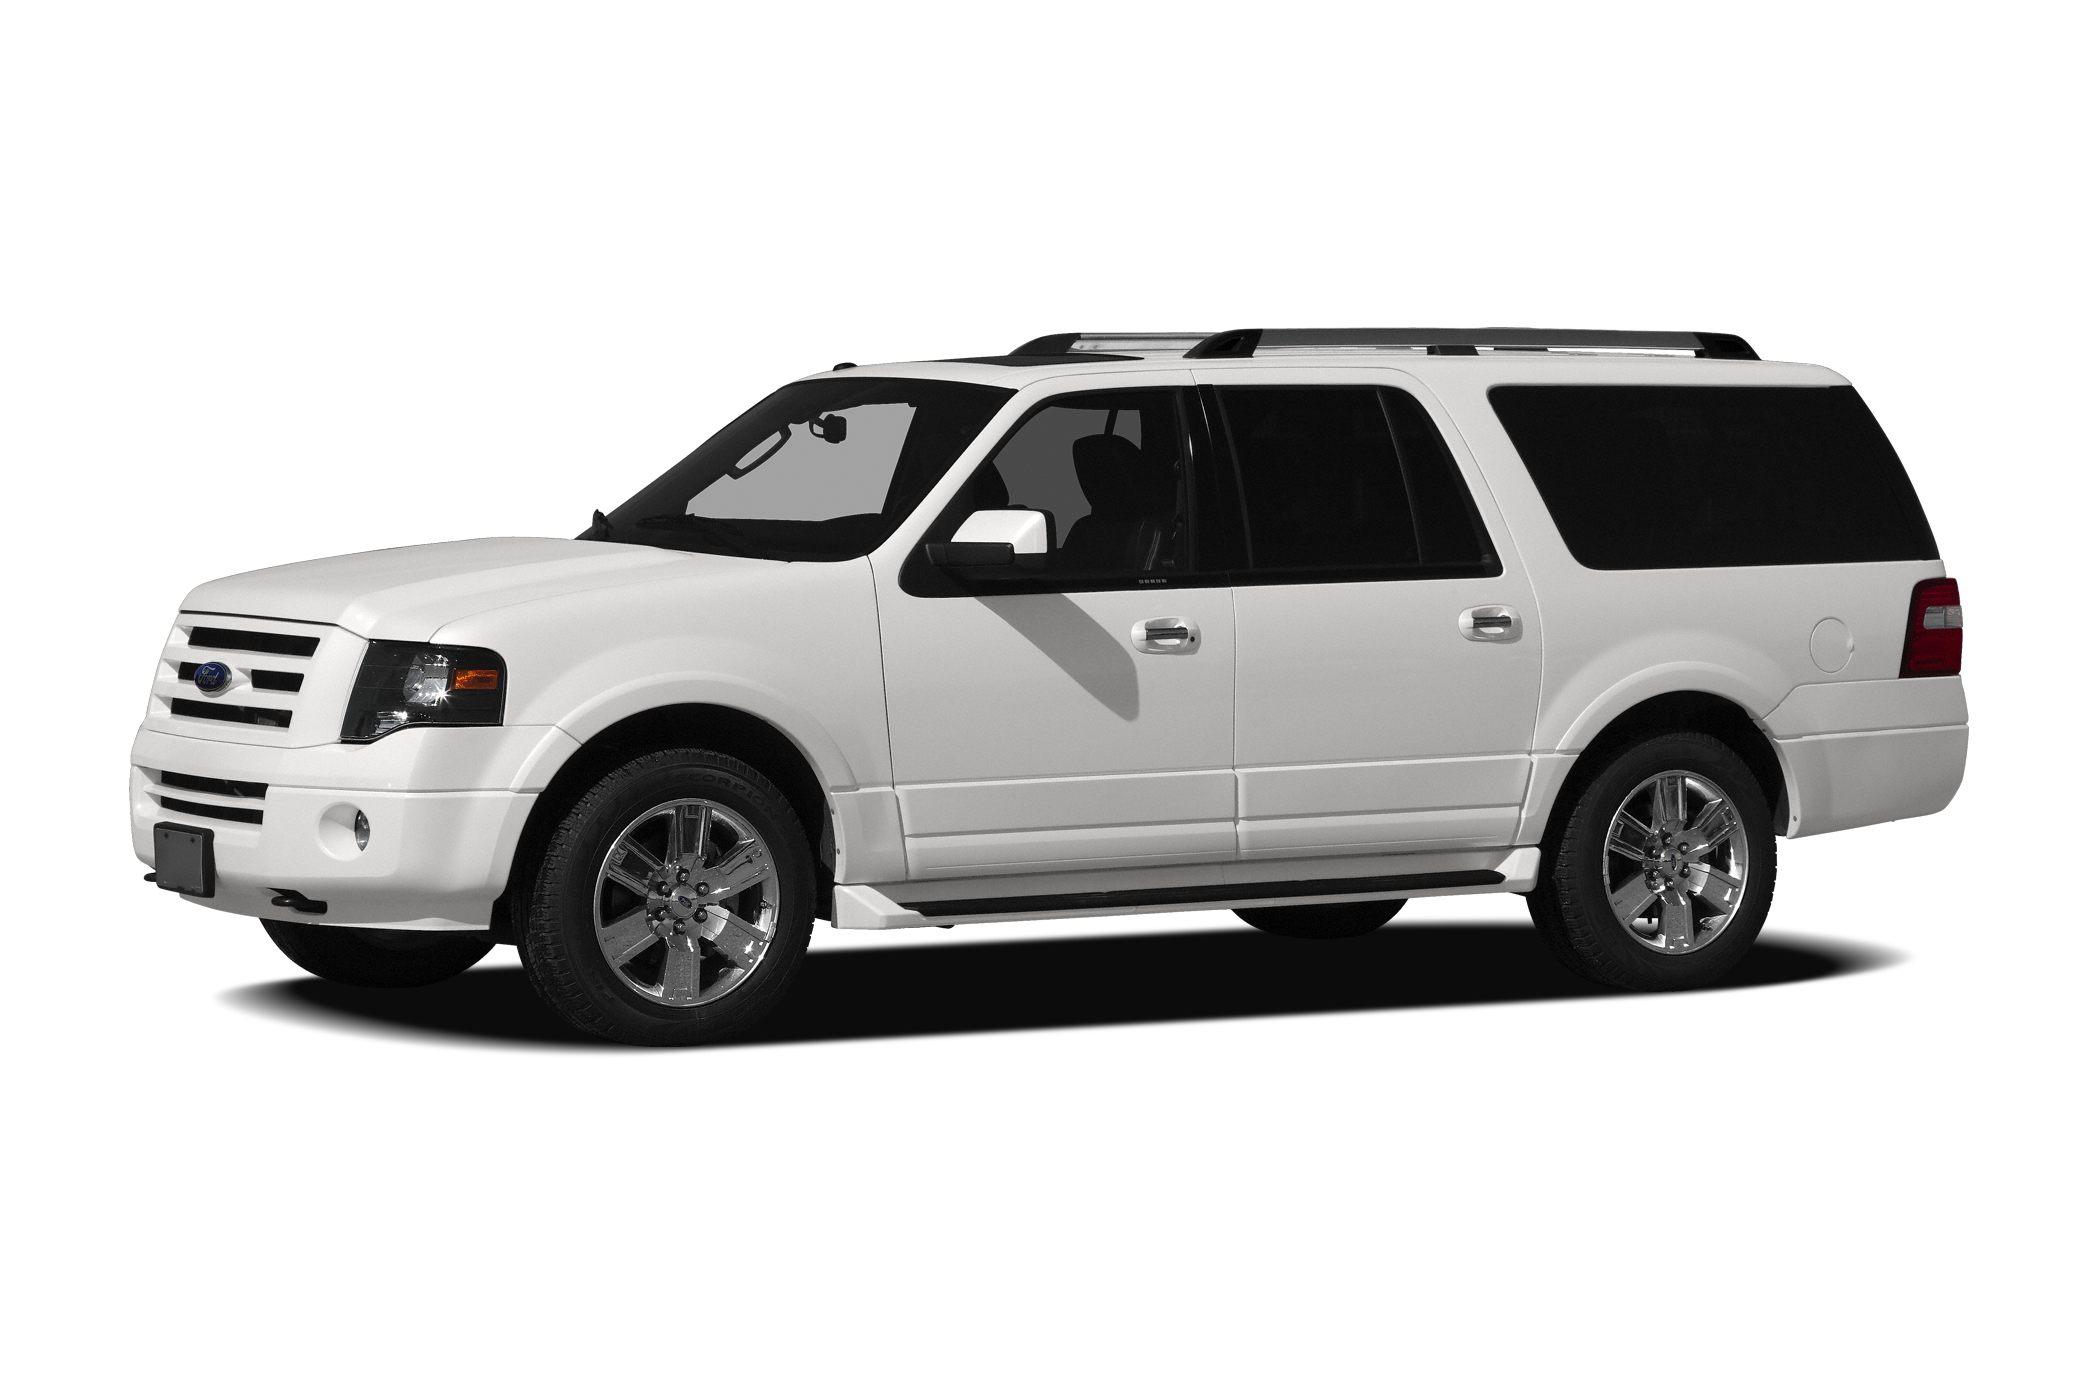 2011 ford expedition el new car test drive rh autoblog com 2011 ford expedition el xlt owners manual 2012 Ford Expedition Interior